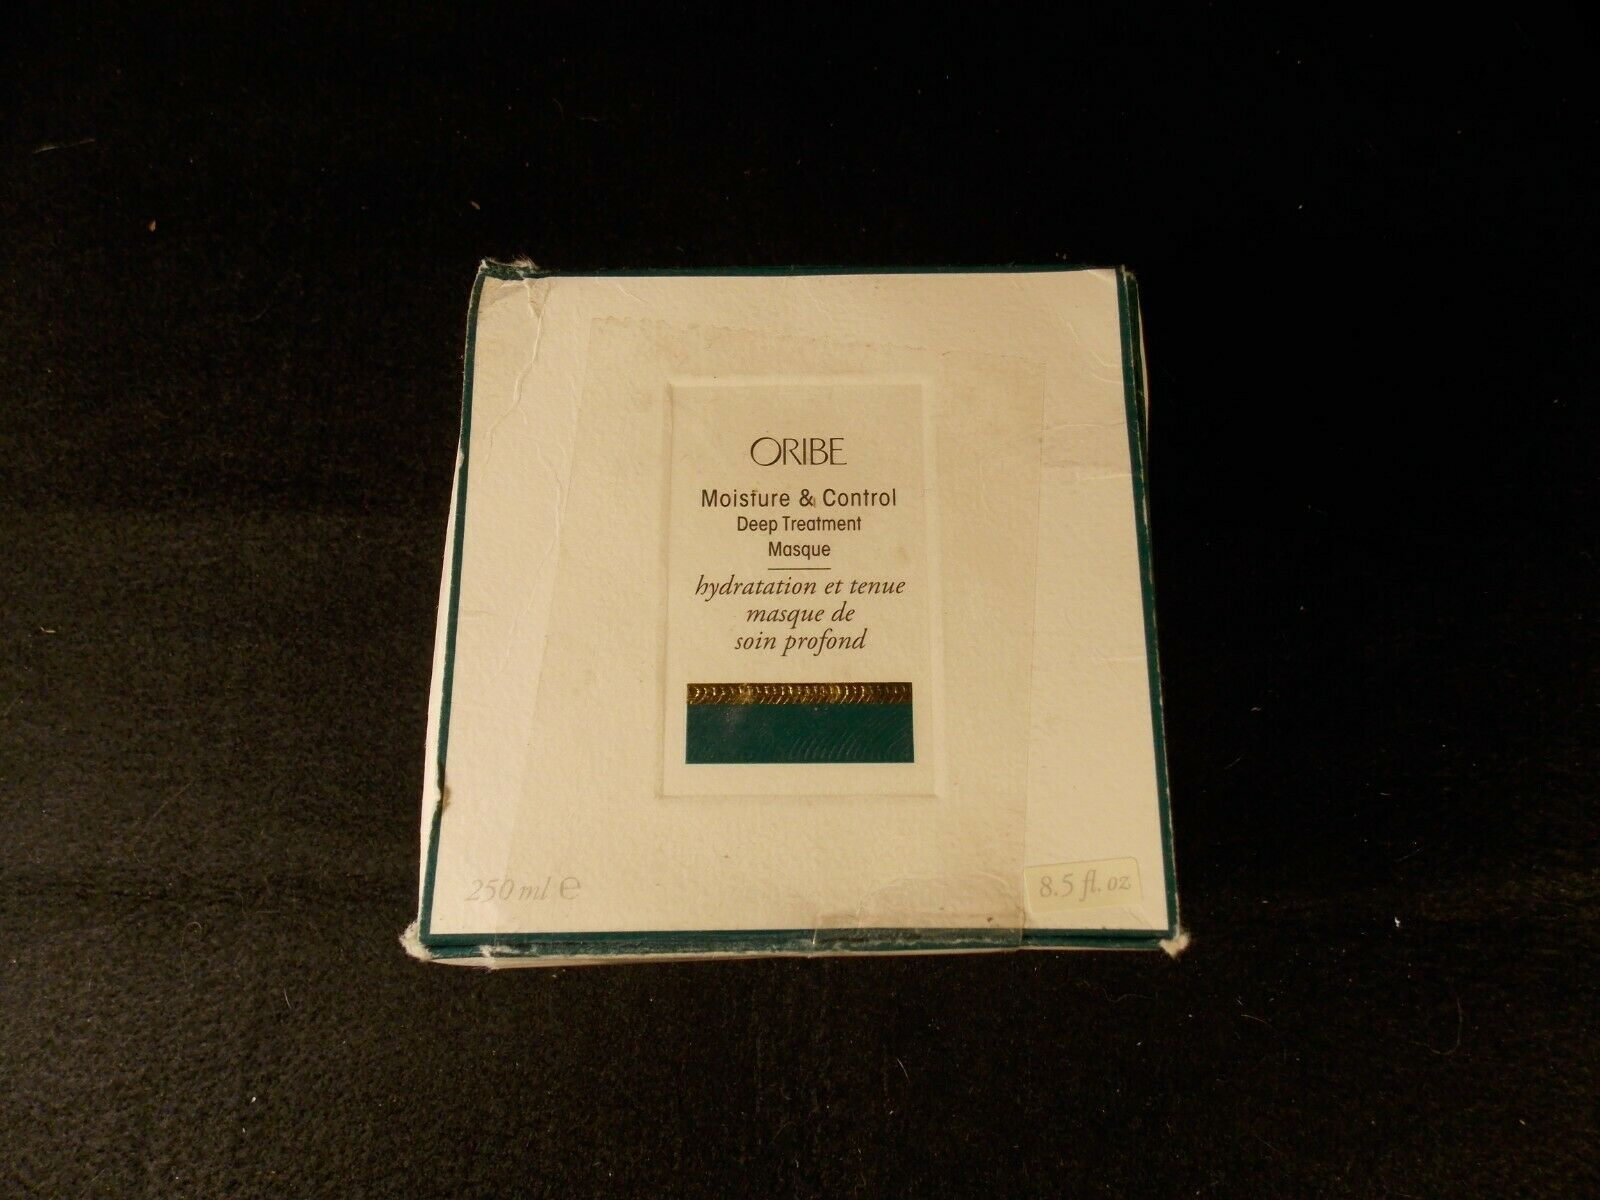 Primary image for Oribe Moisture & Control Deep Treatment Masque 250 ml (8.5 oz) NEW Open Box